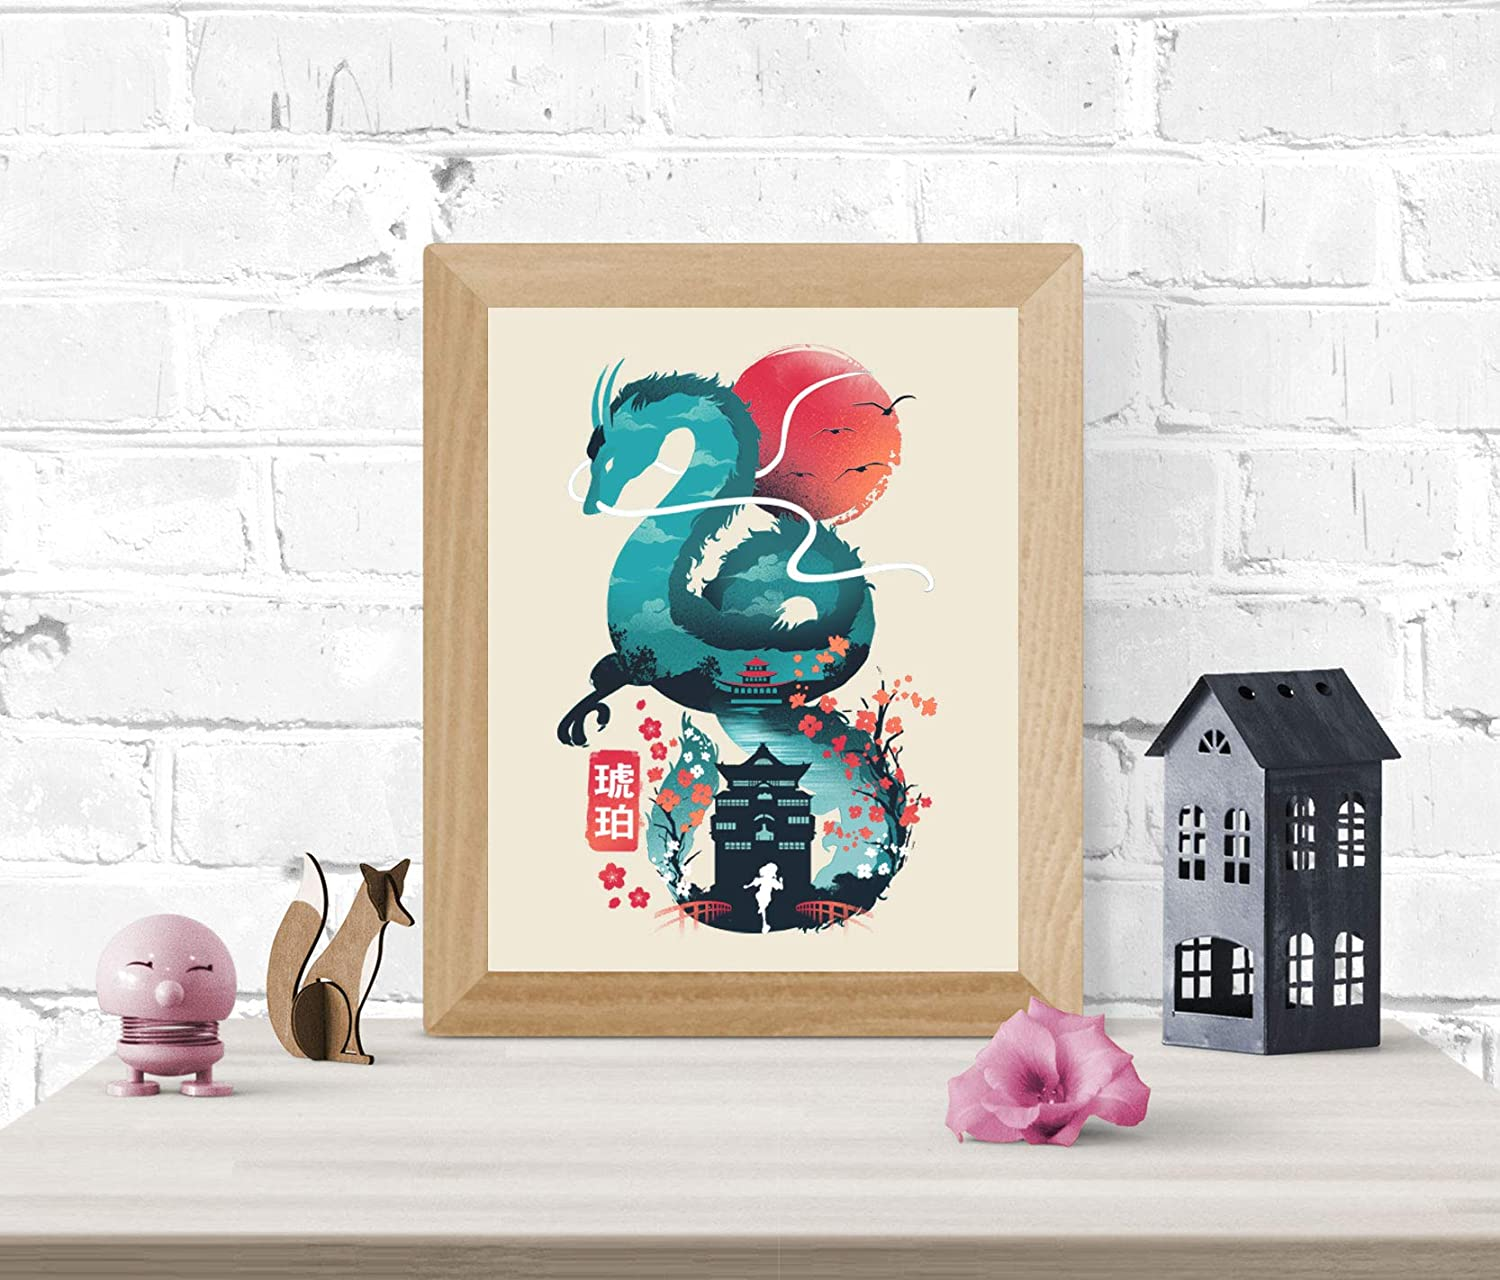 Amazon Com Spirited Away Art Print Studio Ghibli Wall Art 8 X 10 Unframed Japanese Anime Artwork Haku Dragon Print Hayao Miyazaki Wall Hanging Cool Movie Home Decor Chihiro Bathhouse Illustration Handmade